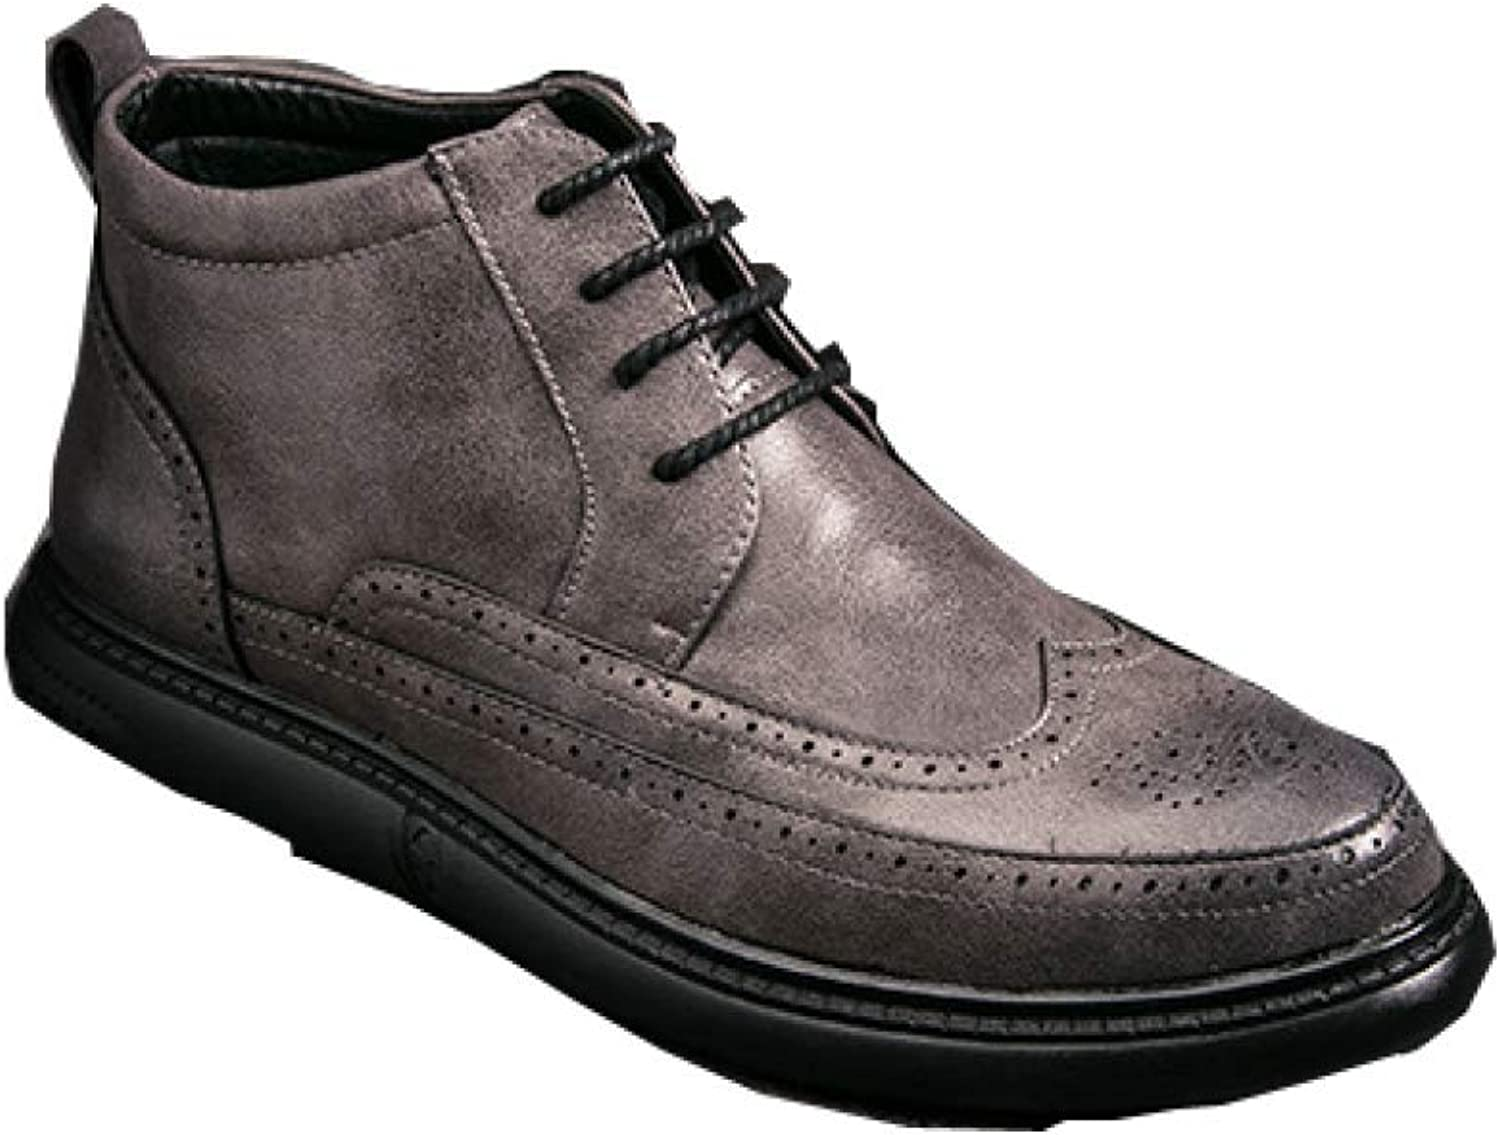 NIUMT Bullock Thick-Soled shoes, Casual and Comfortable Flat Boots, Fashion Martin Boots